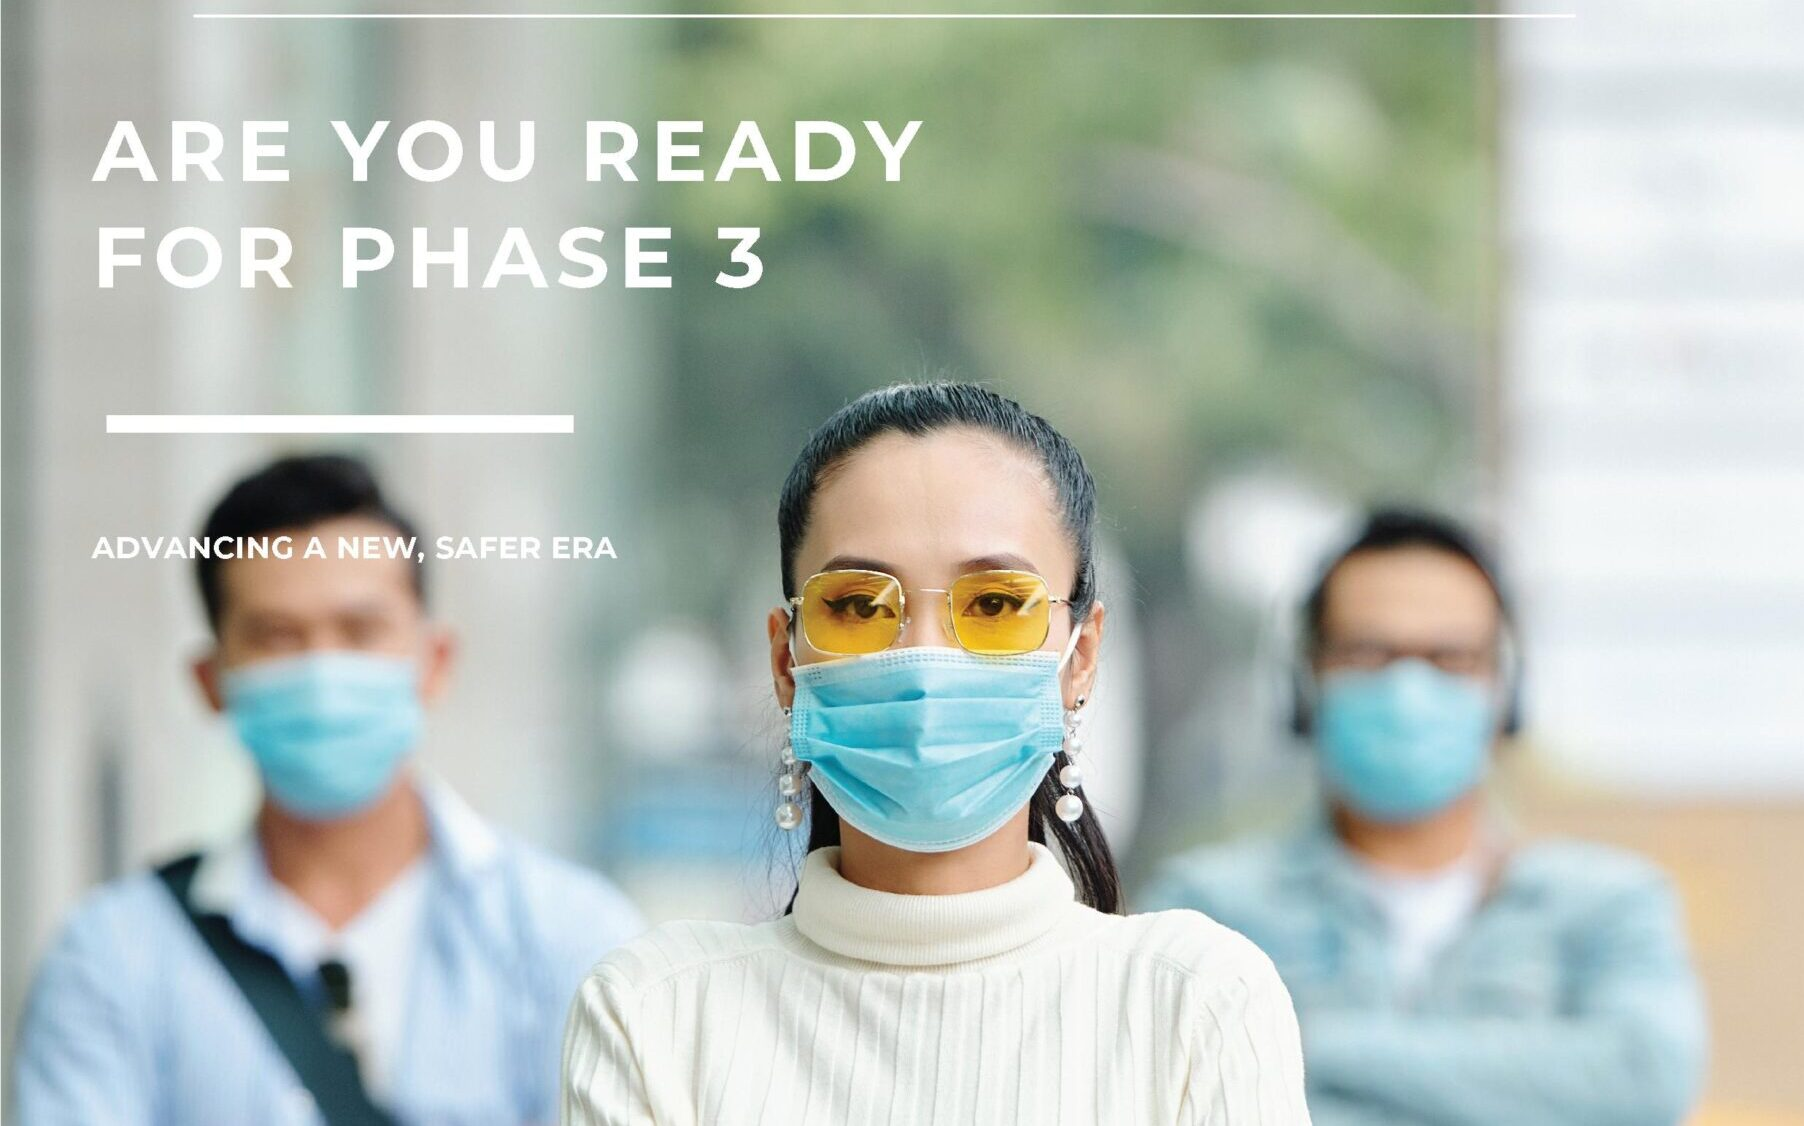 Are you ready for Phase 3?